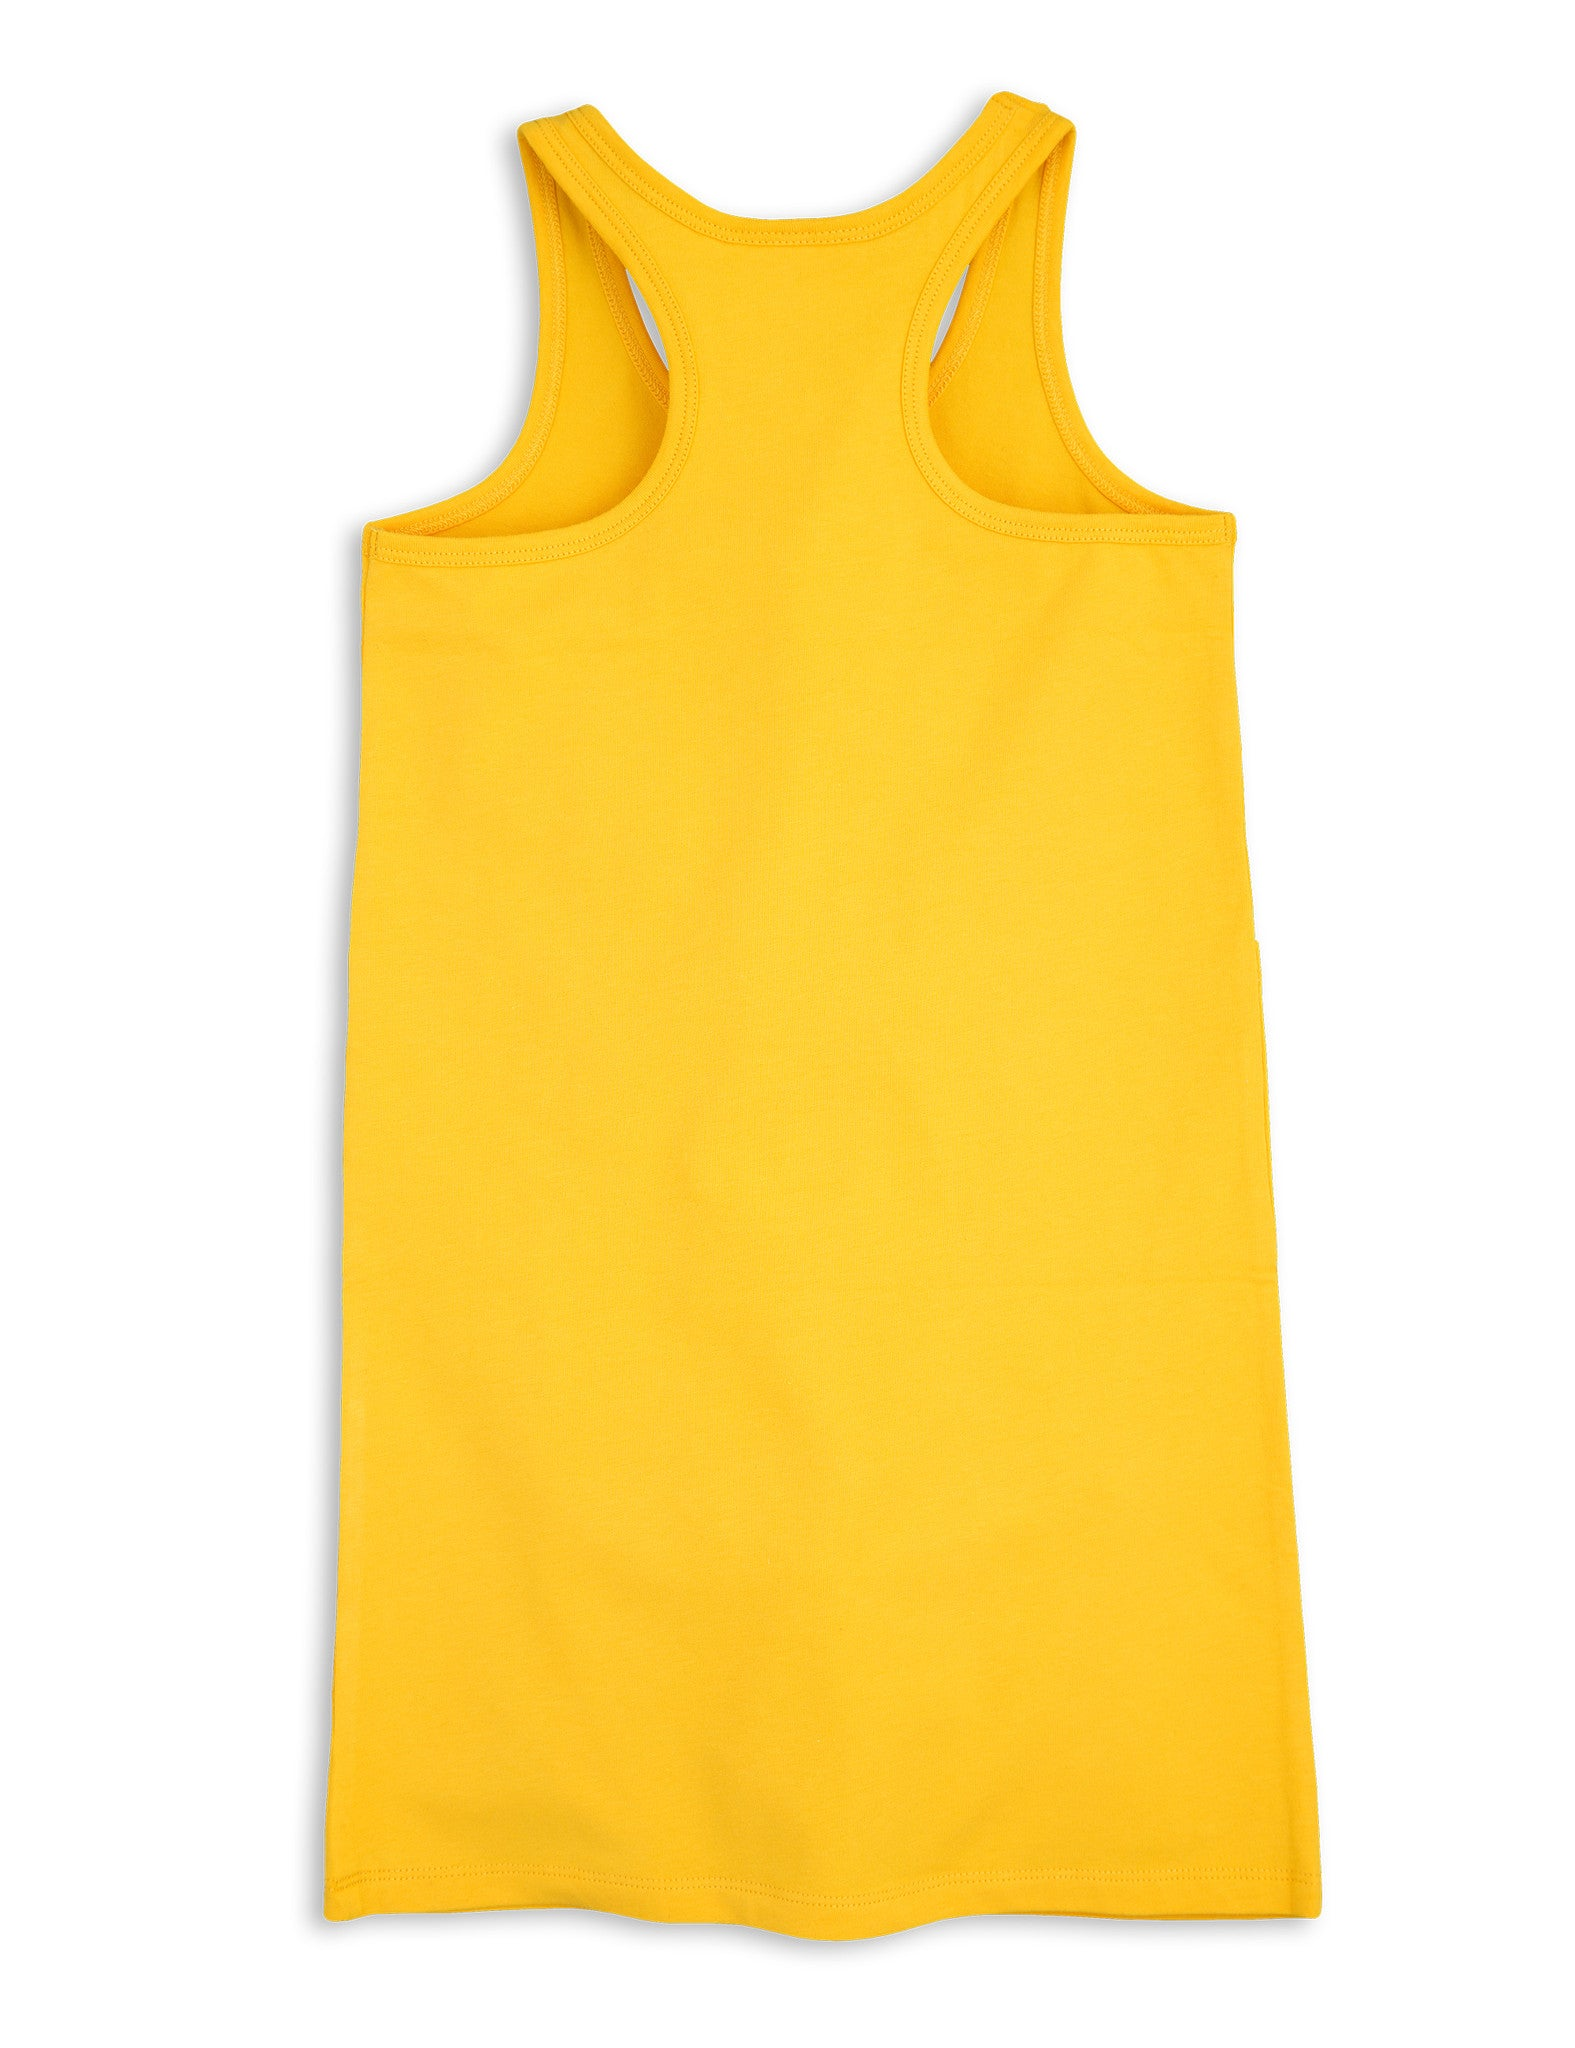 Rodini Yellow Rose Tank Dress - Ladida